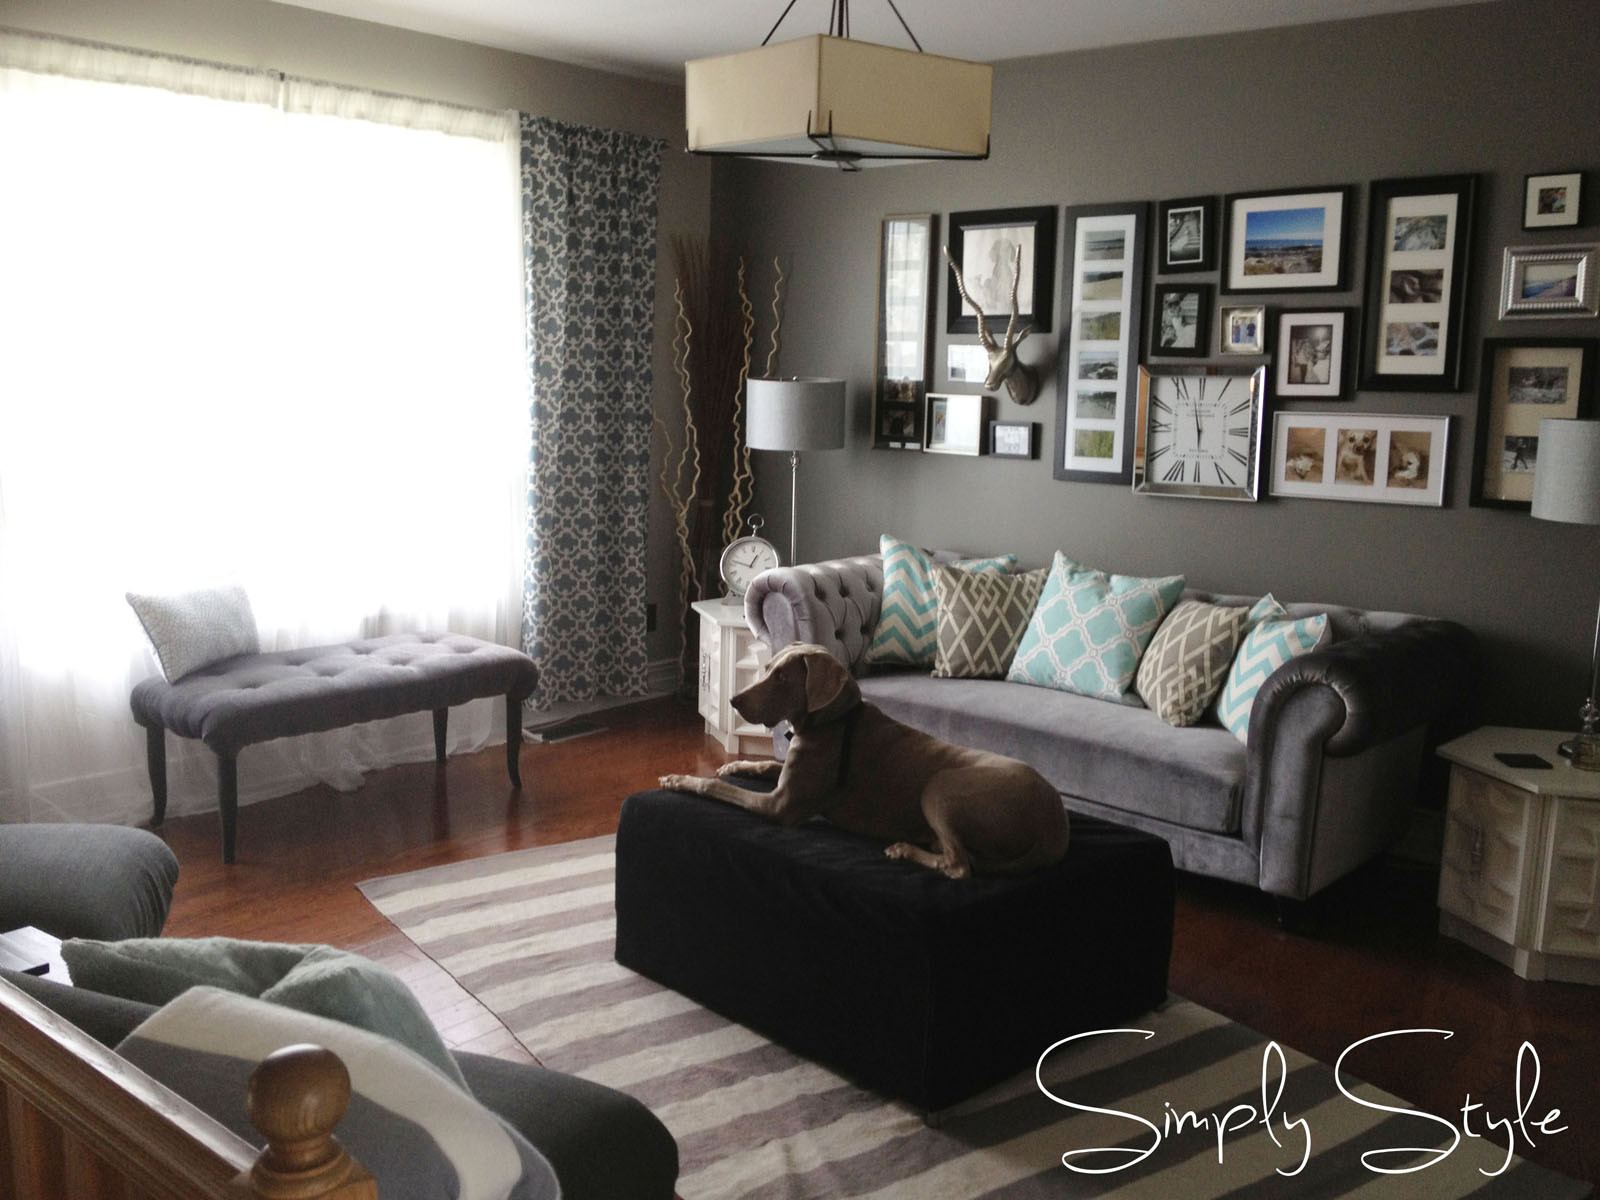 Best ideas about Small Apartment Living Room . Save or Pin Small Room Design best modern living room ideas for small Now.